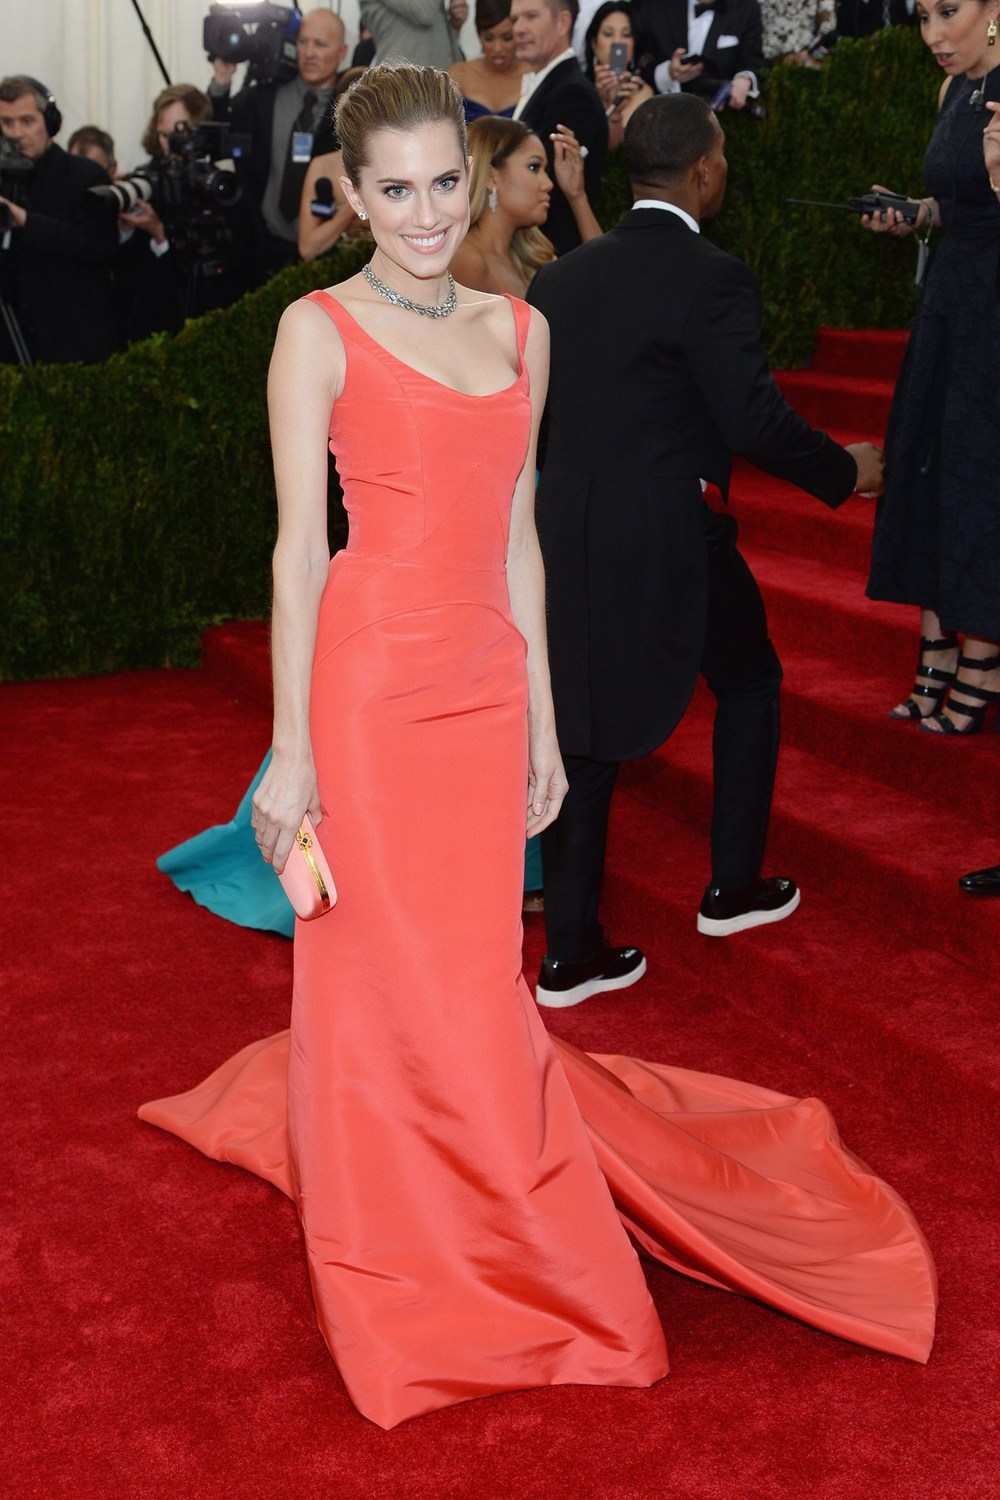 Allison Williams wore Oscar de la Renta